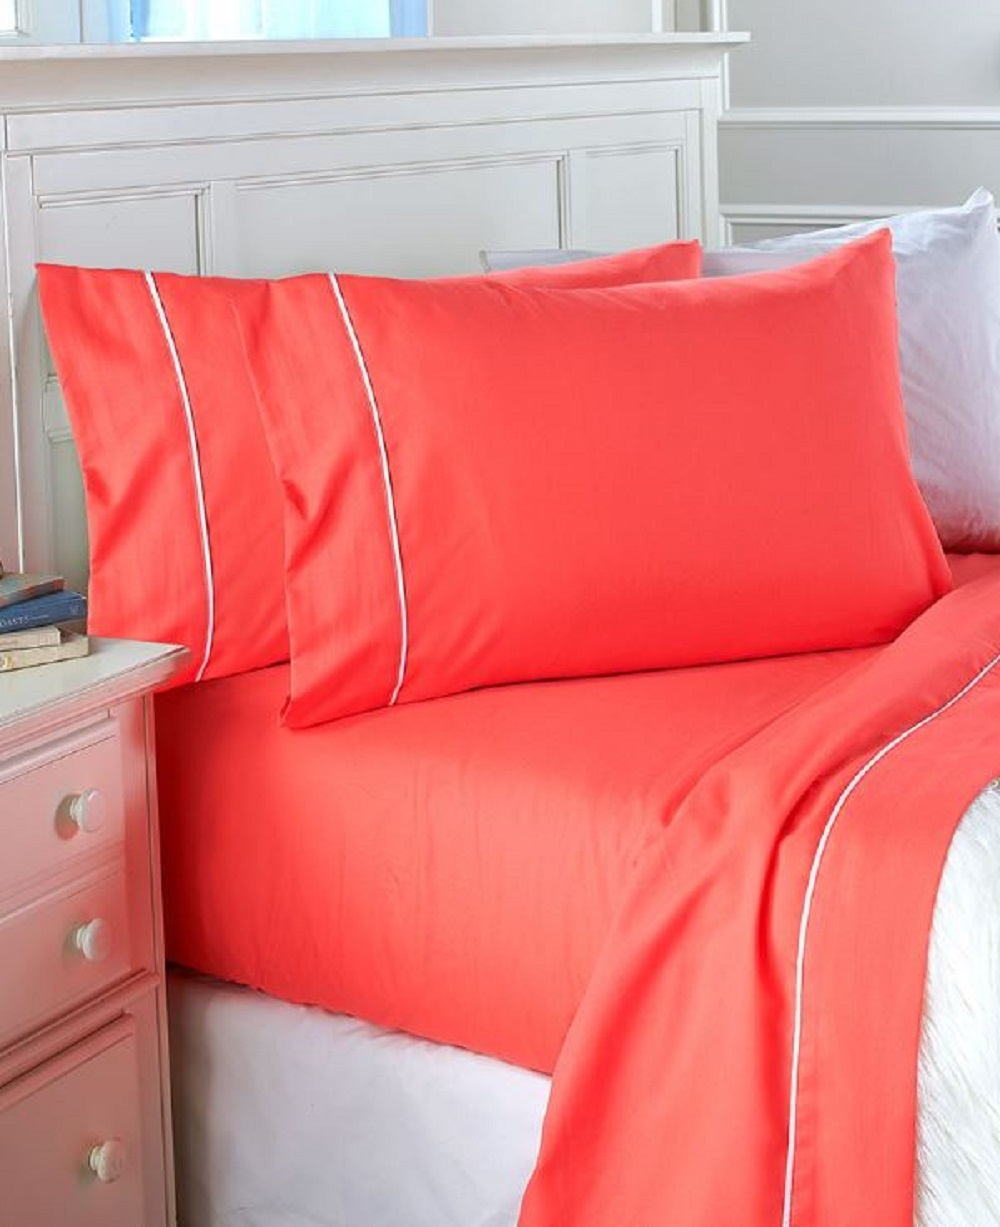 Coral Sheet Set 3 Pc Watermelon Easy Care Bed Sheets Bedroom Bedding Home Deco